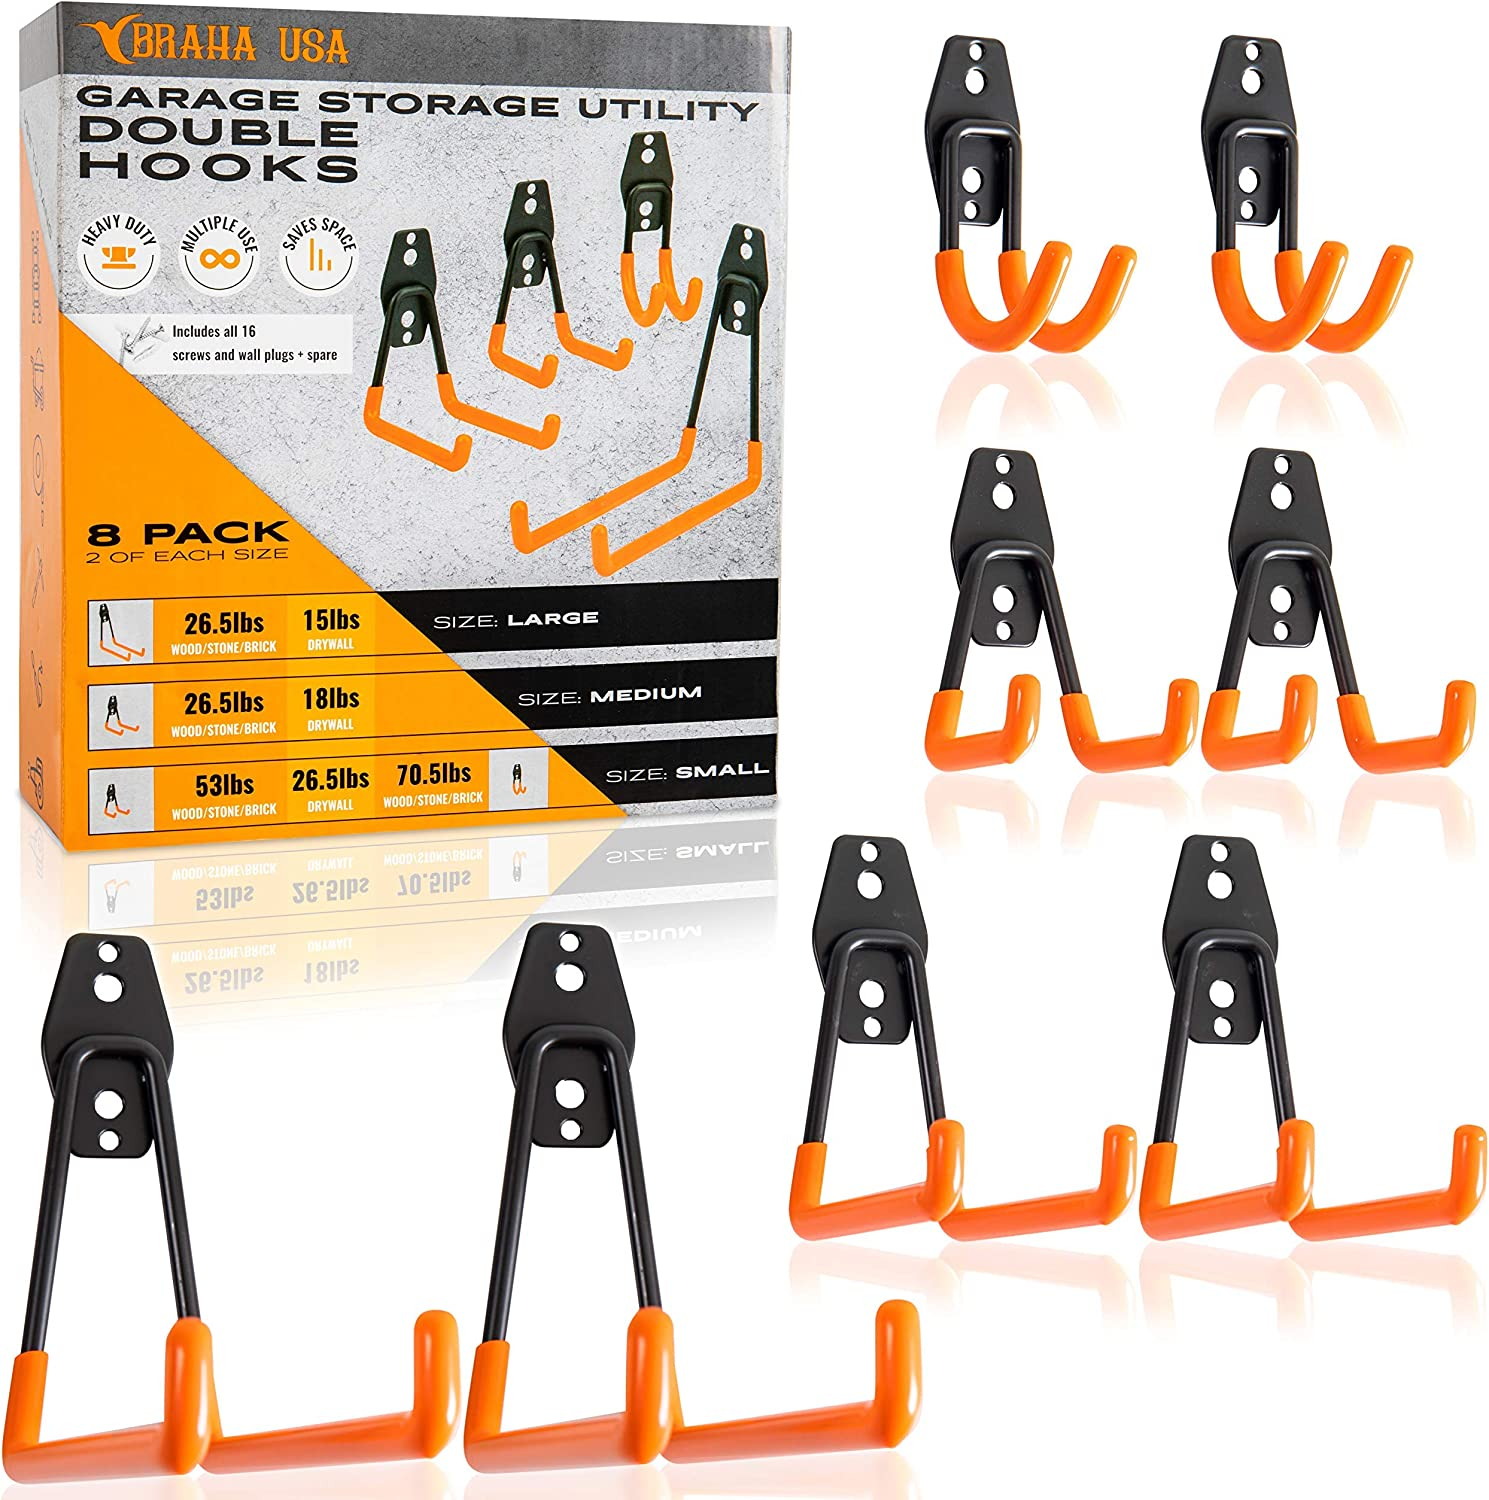 Braha USA Tool Hangers for Garage Wall - Steel Garage Storage Utility Double Hooks - Heavy Duty Wall Mount Hanging Hooks for Organizing Power Tools, Ladders, Bikes, Bulk Items & Ropes - Pack of 8